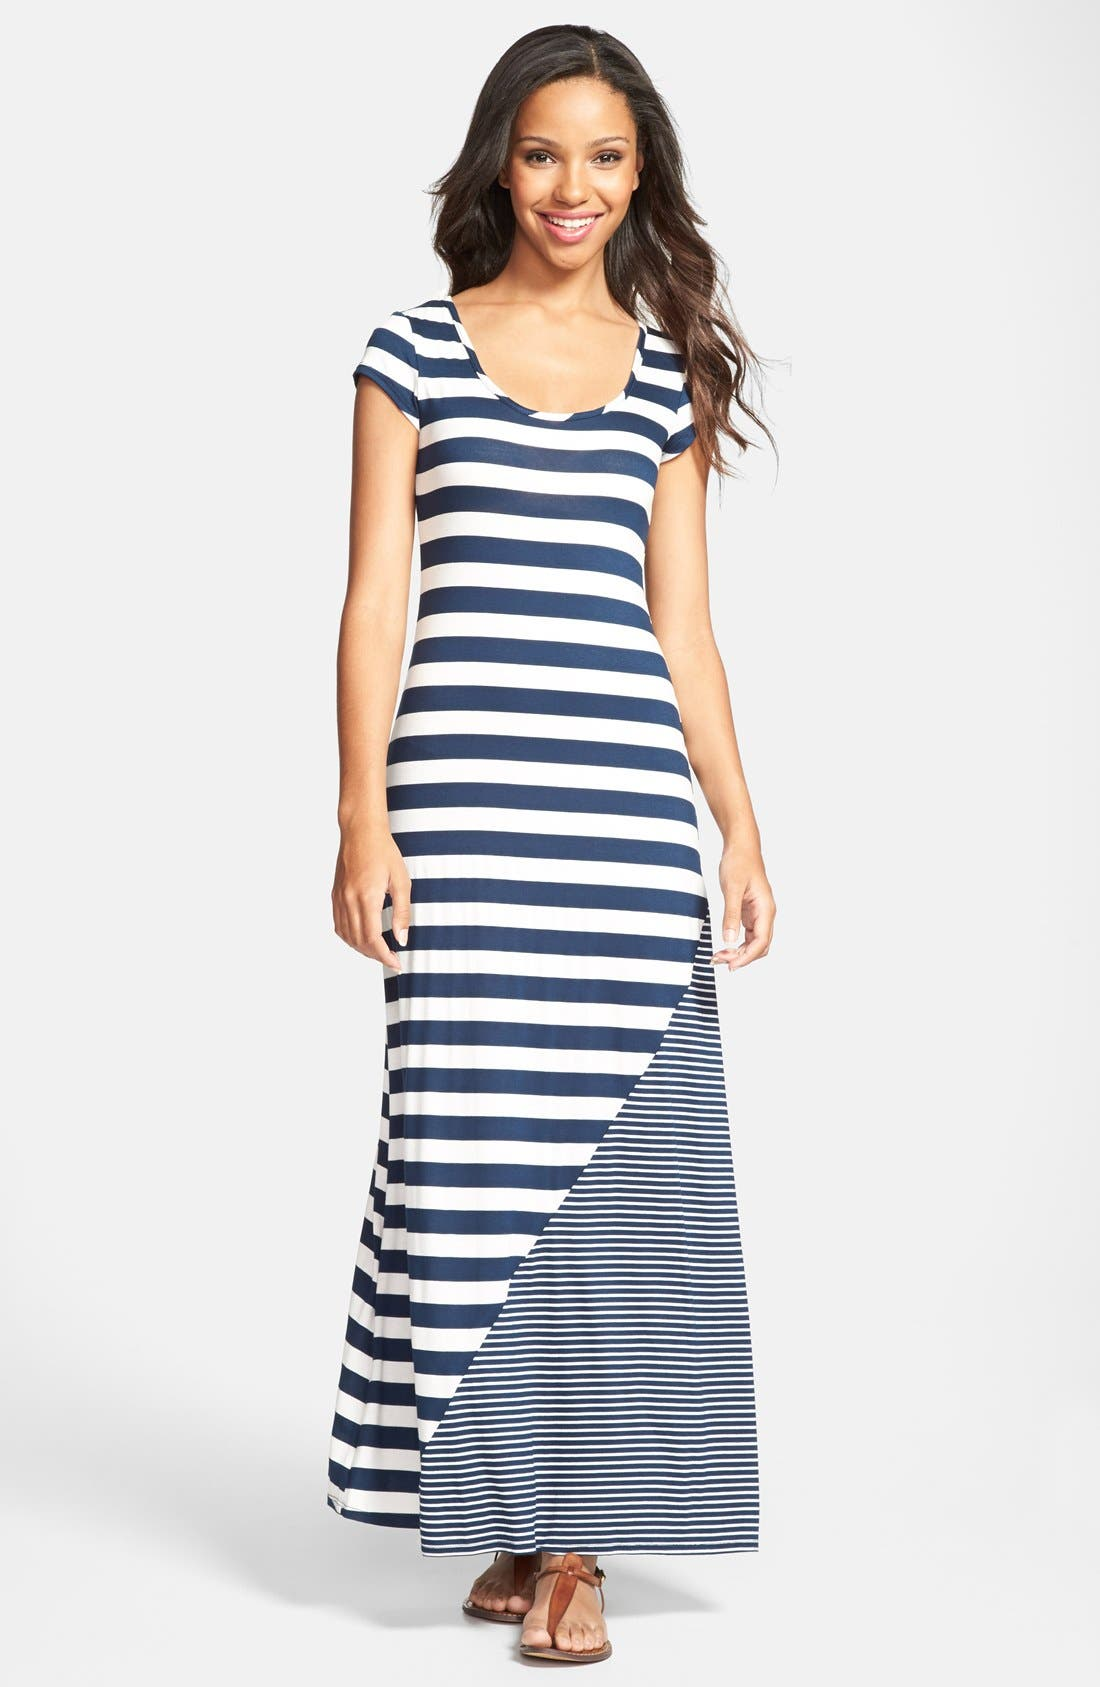 Alternate Image 1 Selected - Everleigh Multi Stripe Short Sleeve Maxi Dress (Regular & Petite)